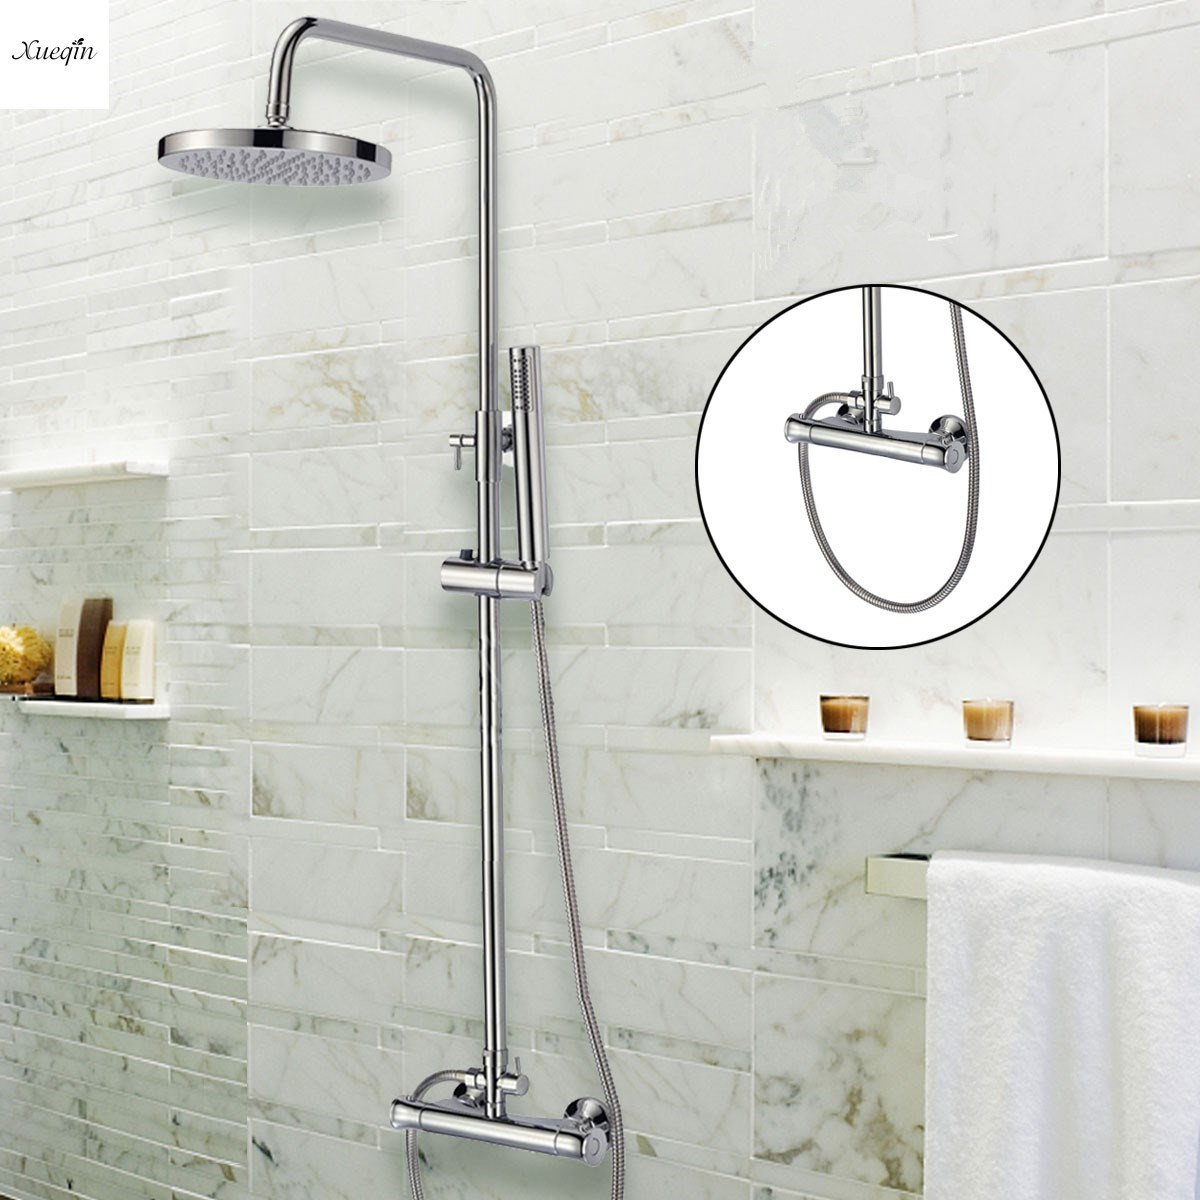 Chrome Brass Shower Faucet Rainfall Handheld Shower Sprayer Tub Mixer Tap Set Round Panel Bath Shower Thermostatic Wall Mounted цена 2017